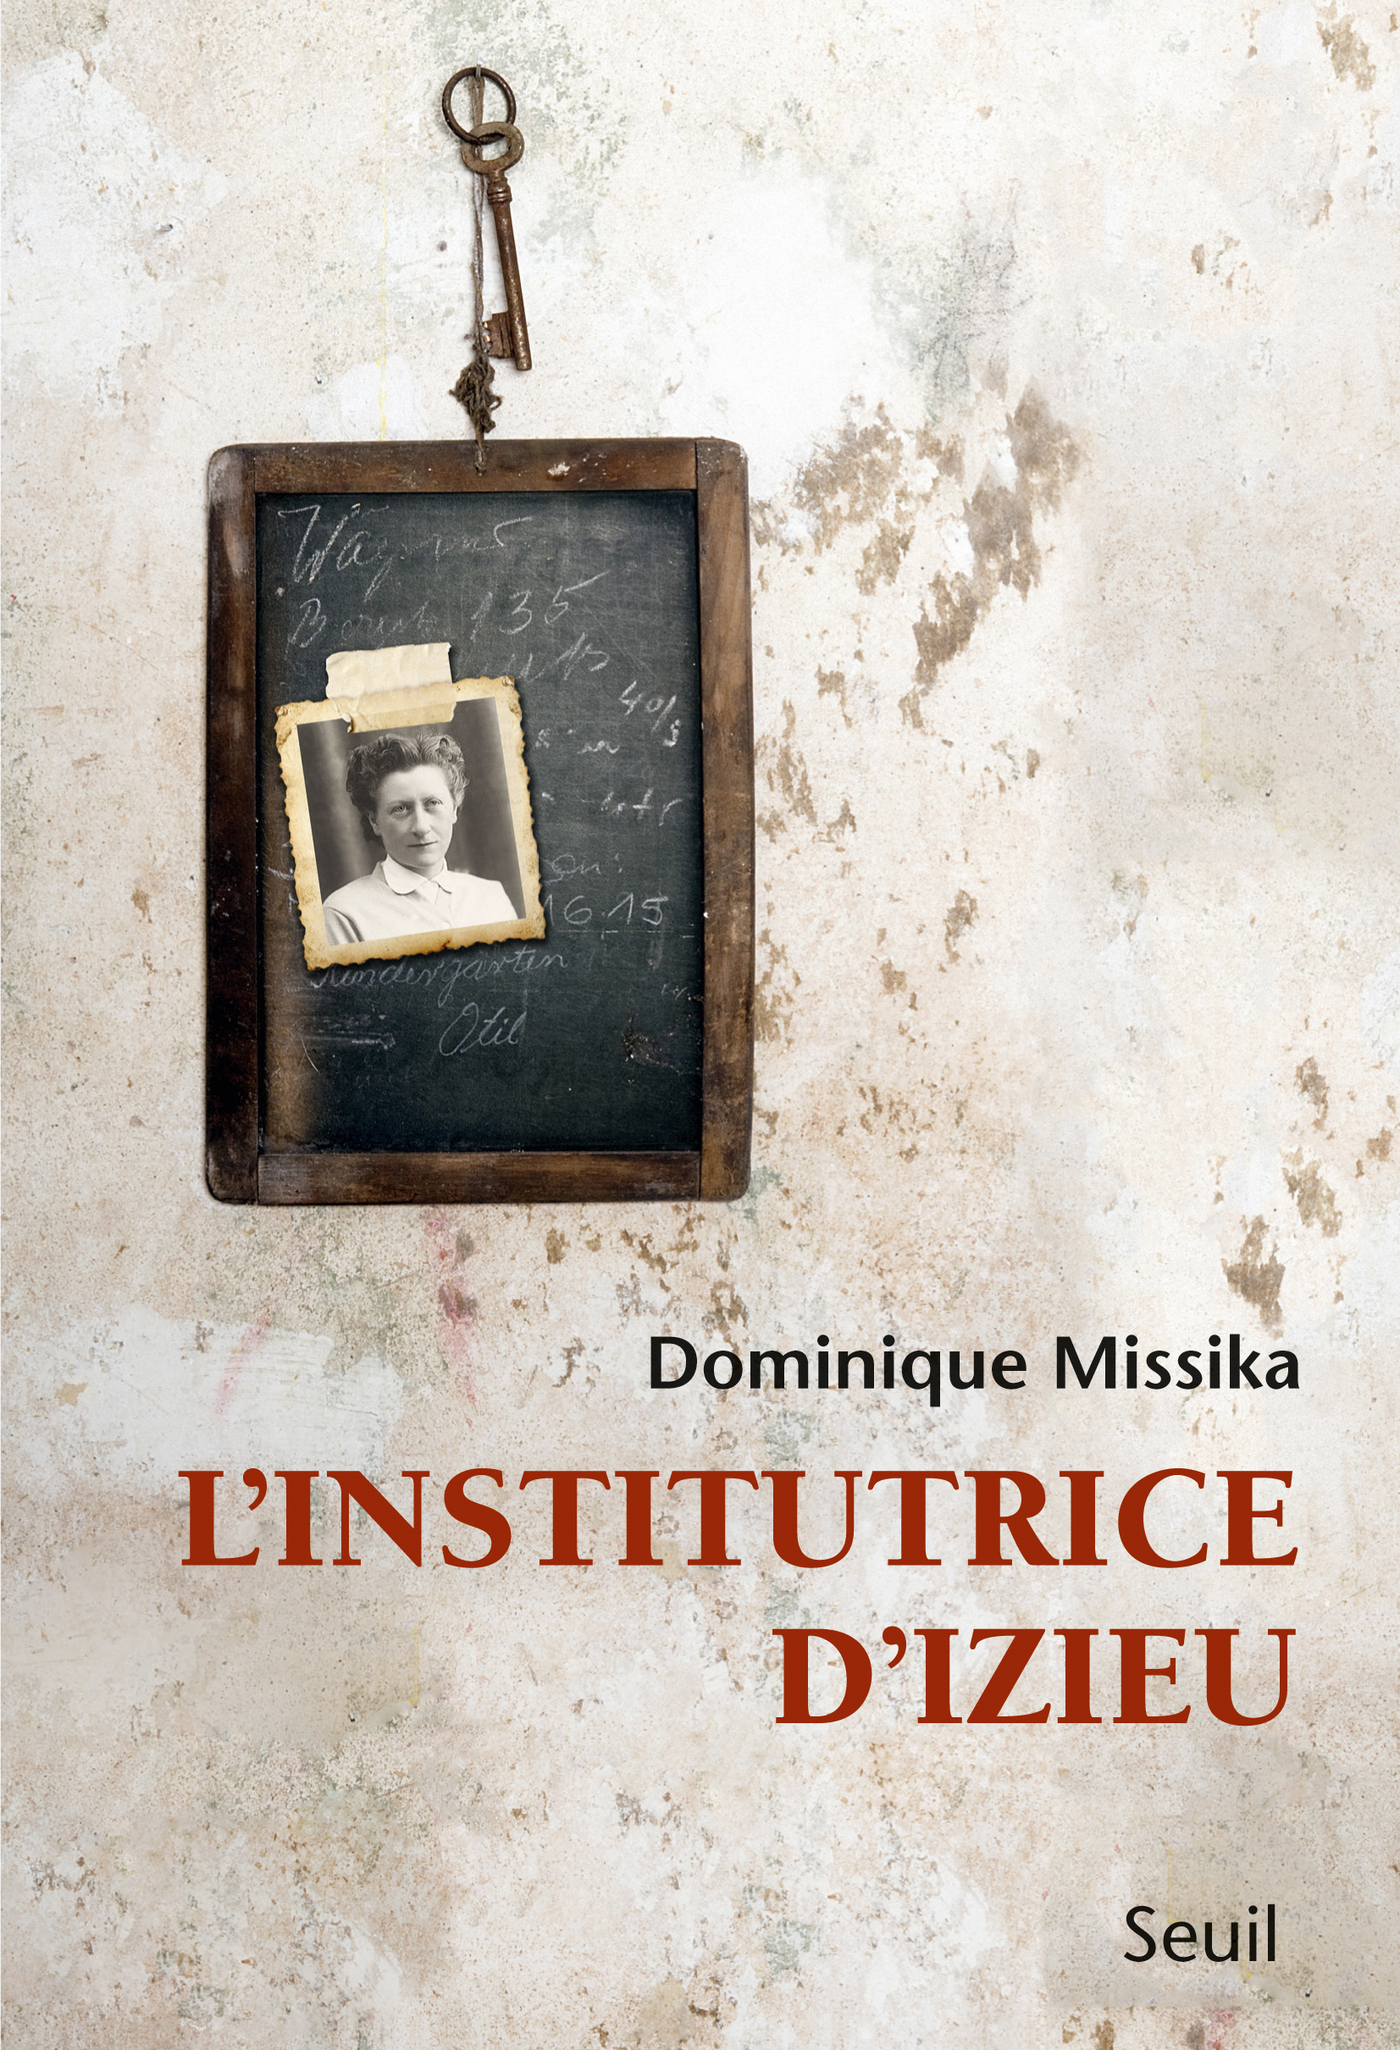 L'Institutrice d'Izieu